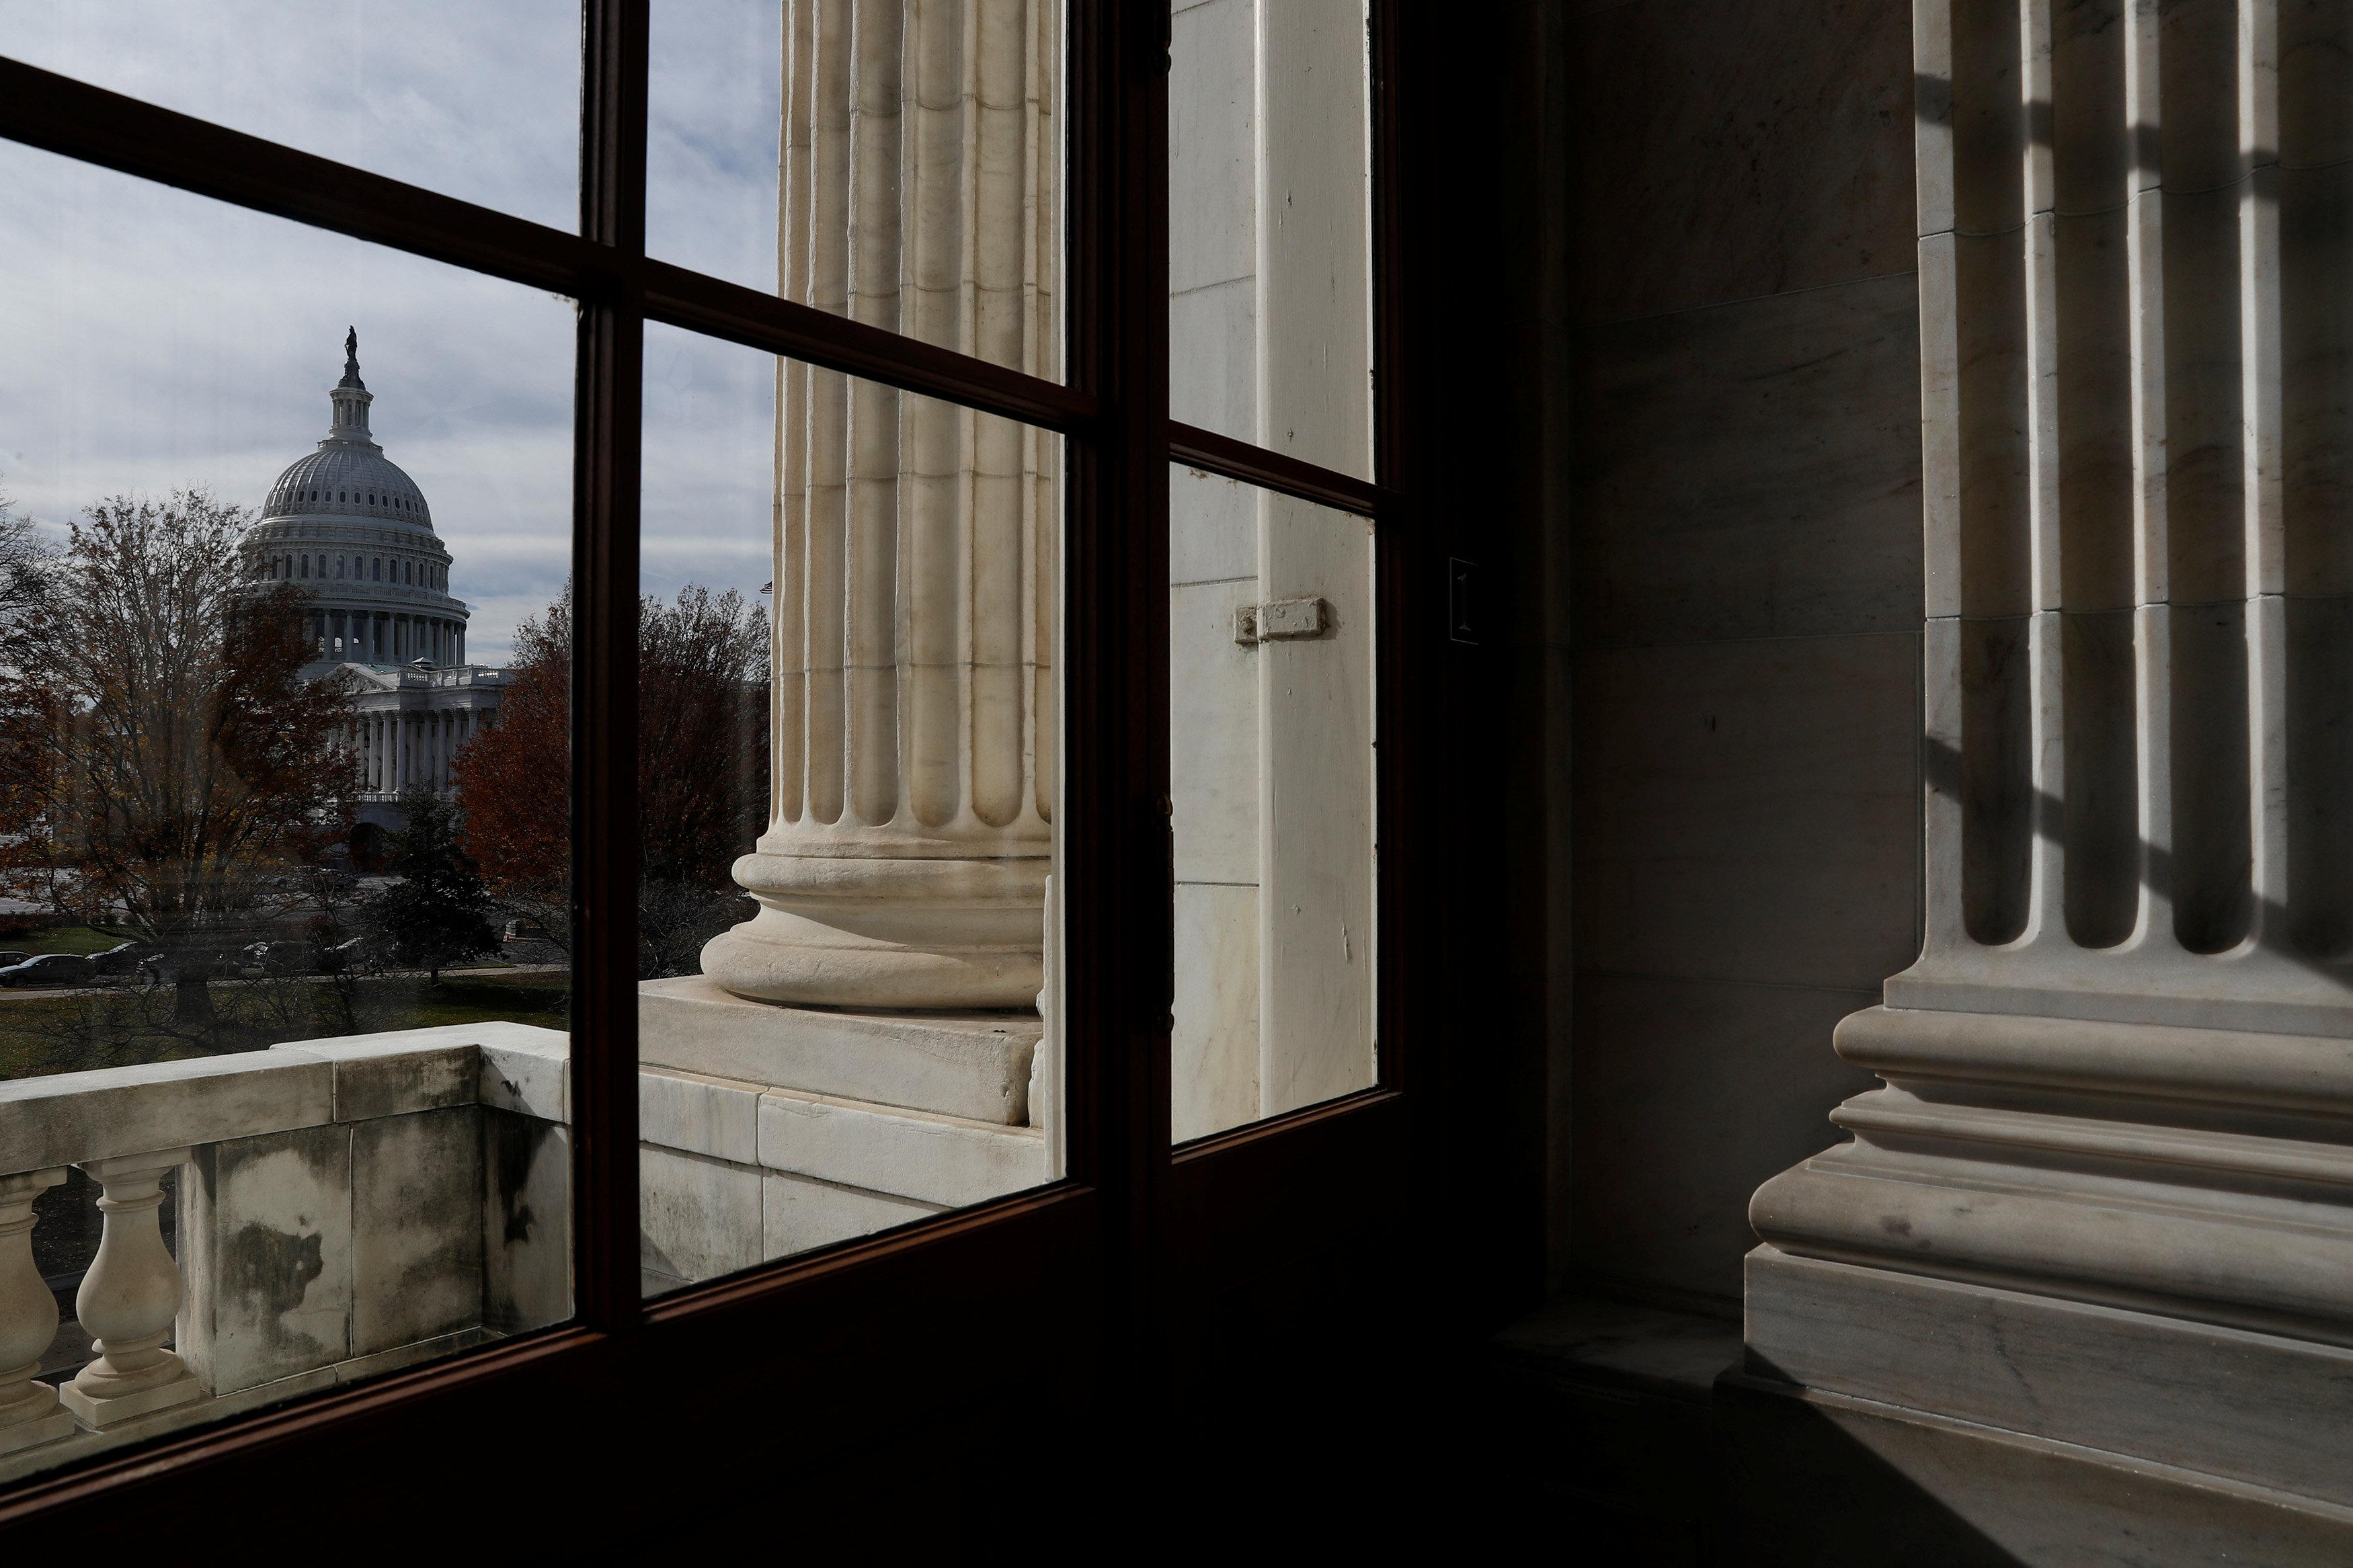 The Capitol Building is seen from Russell Senate Office Building in Washington, U.S., December 6, 2017. Aaron P. Bernstein